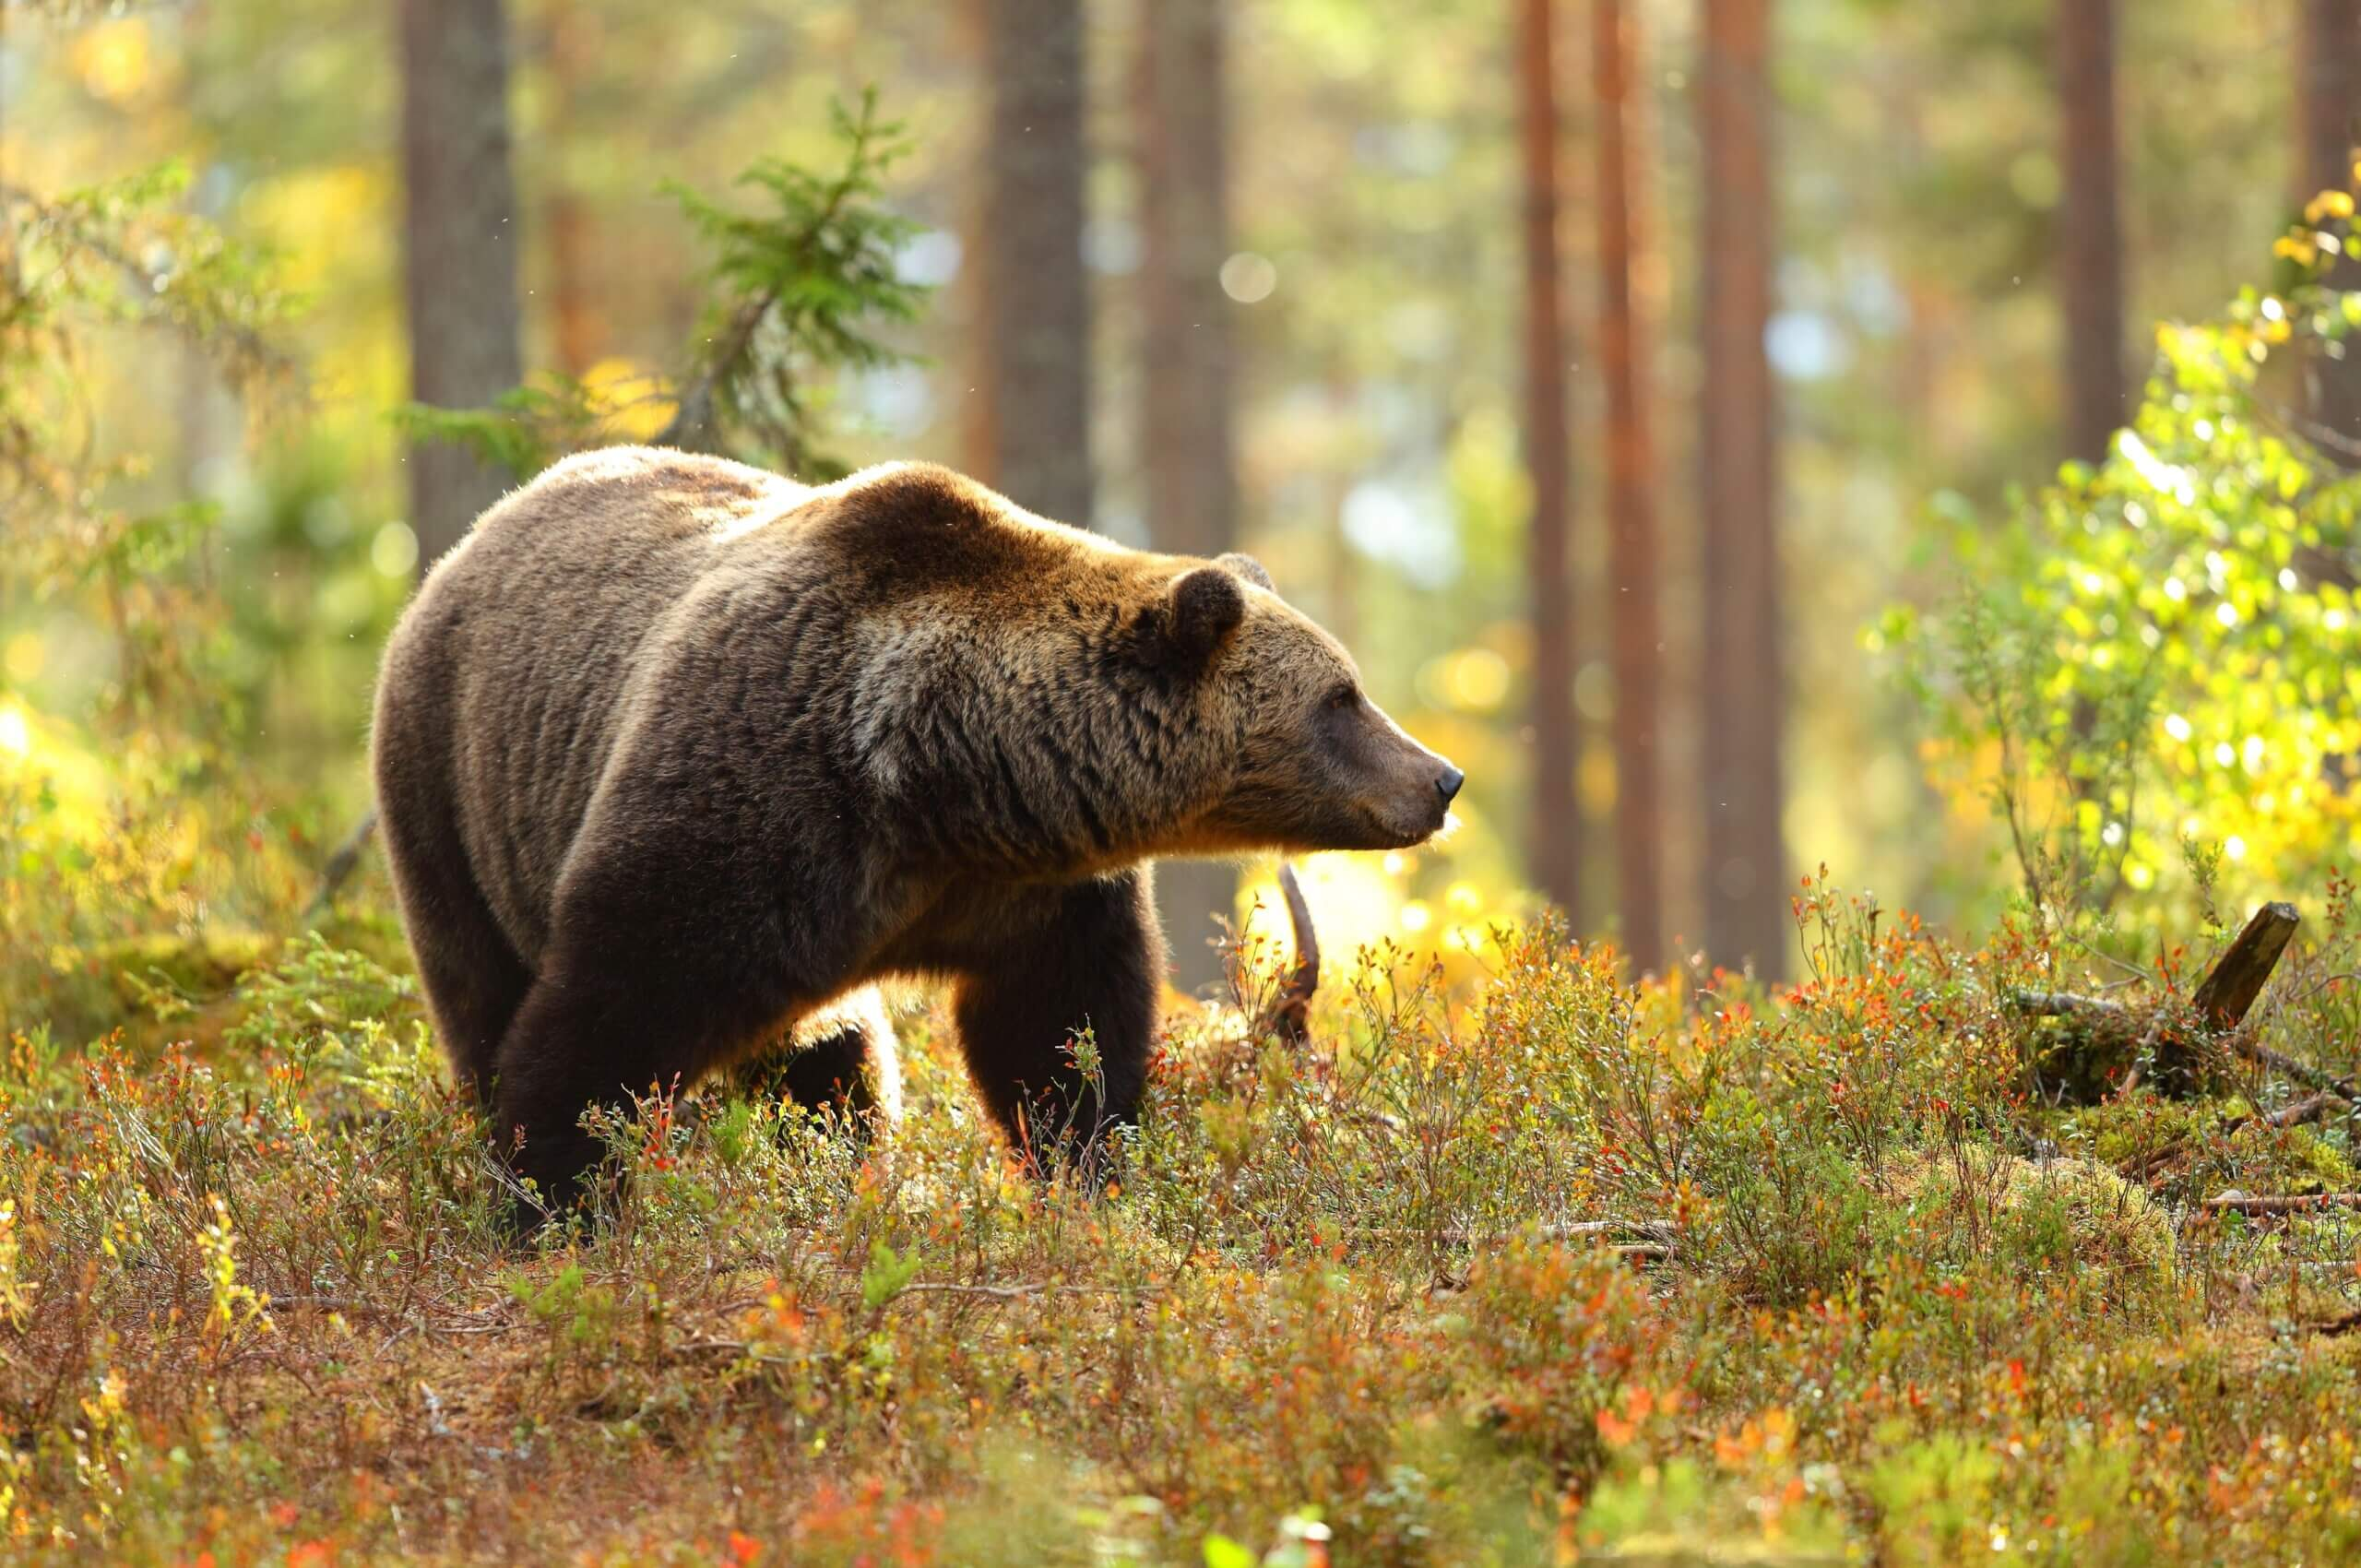 The Best Hot Spots to See Wildlife in California